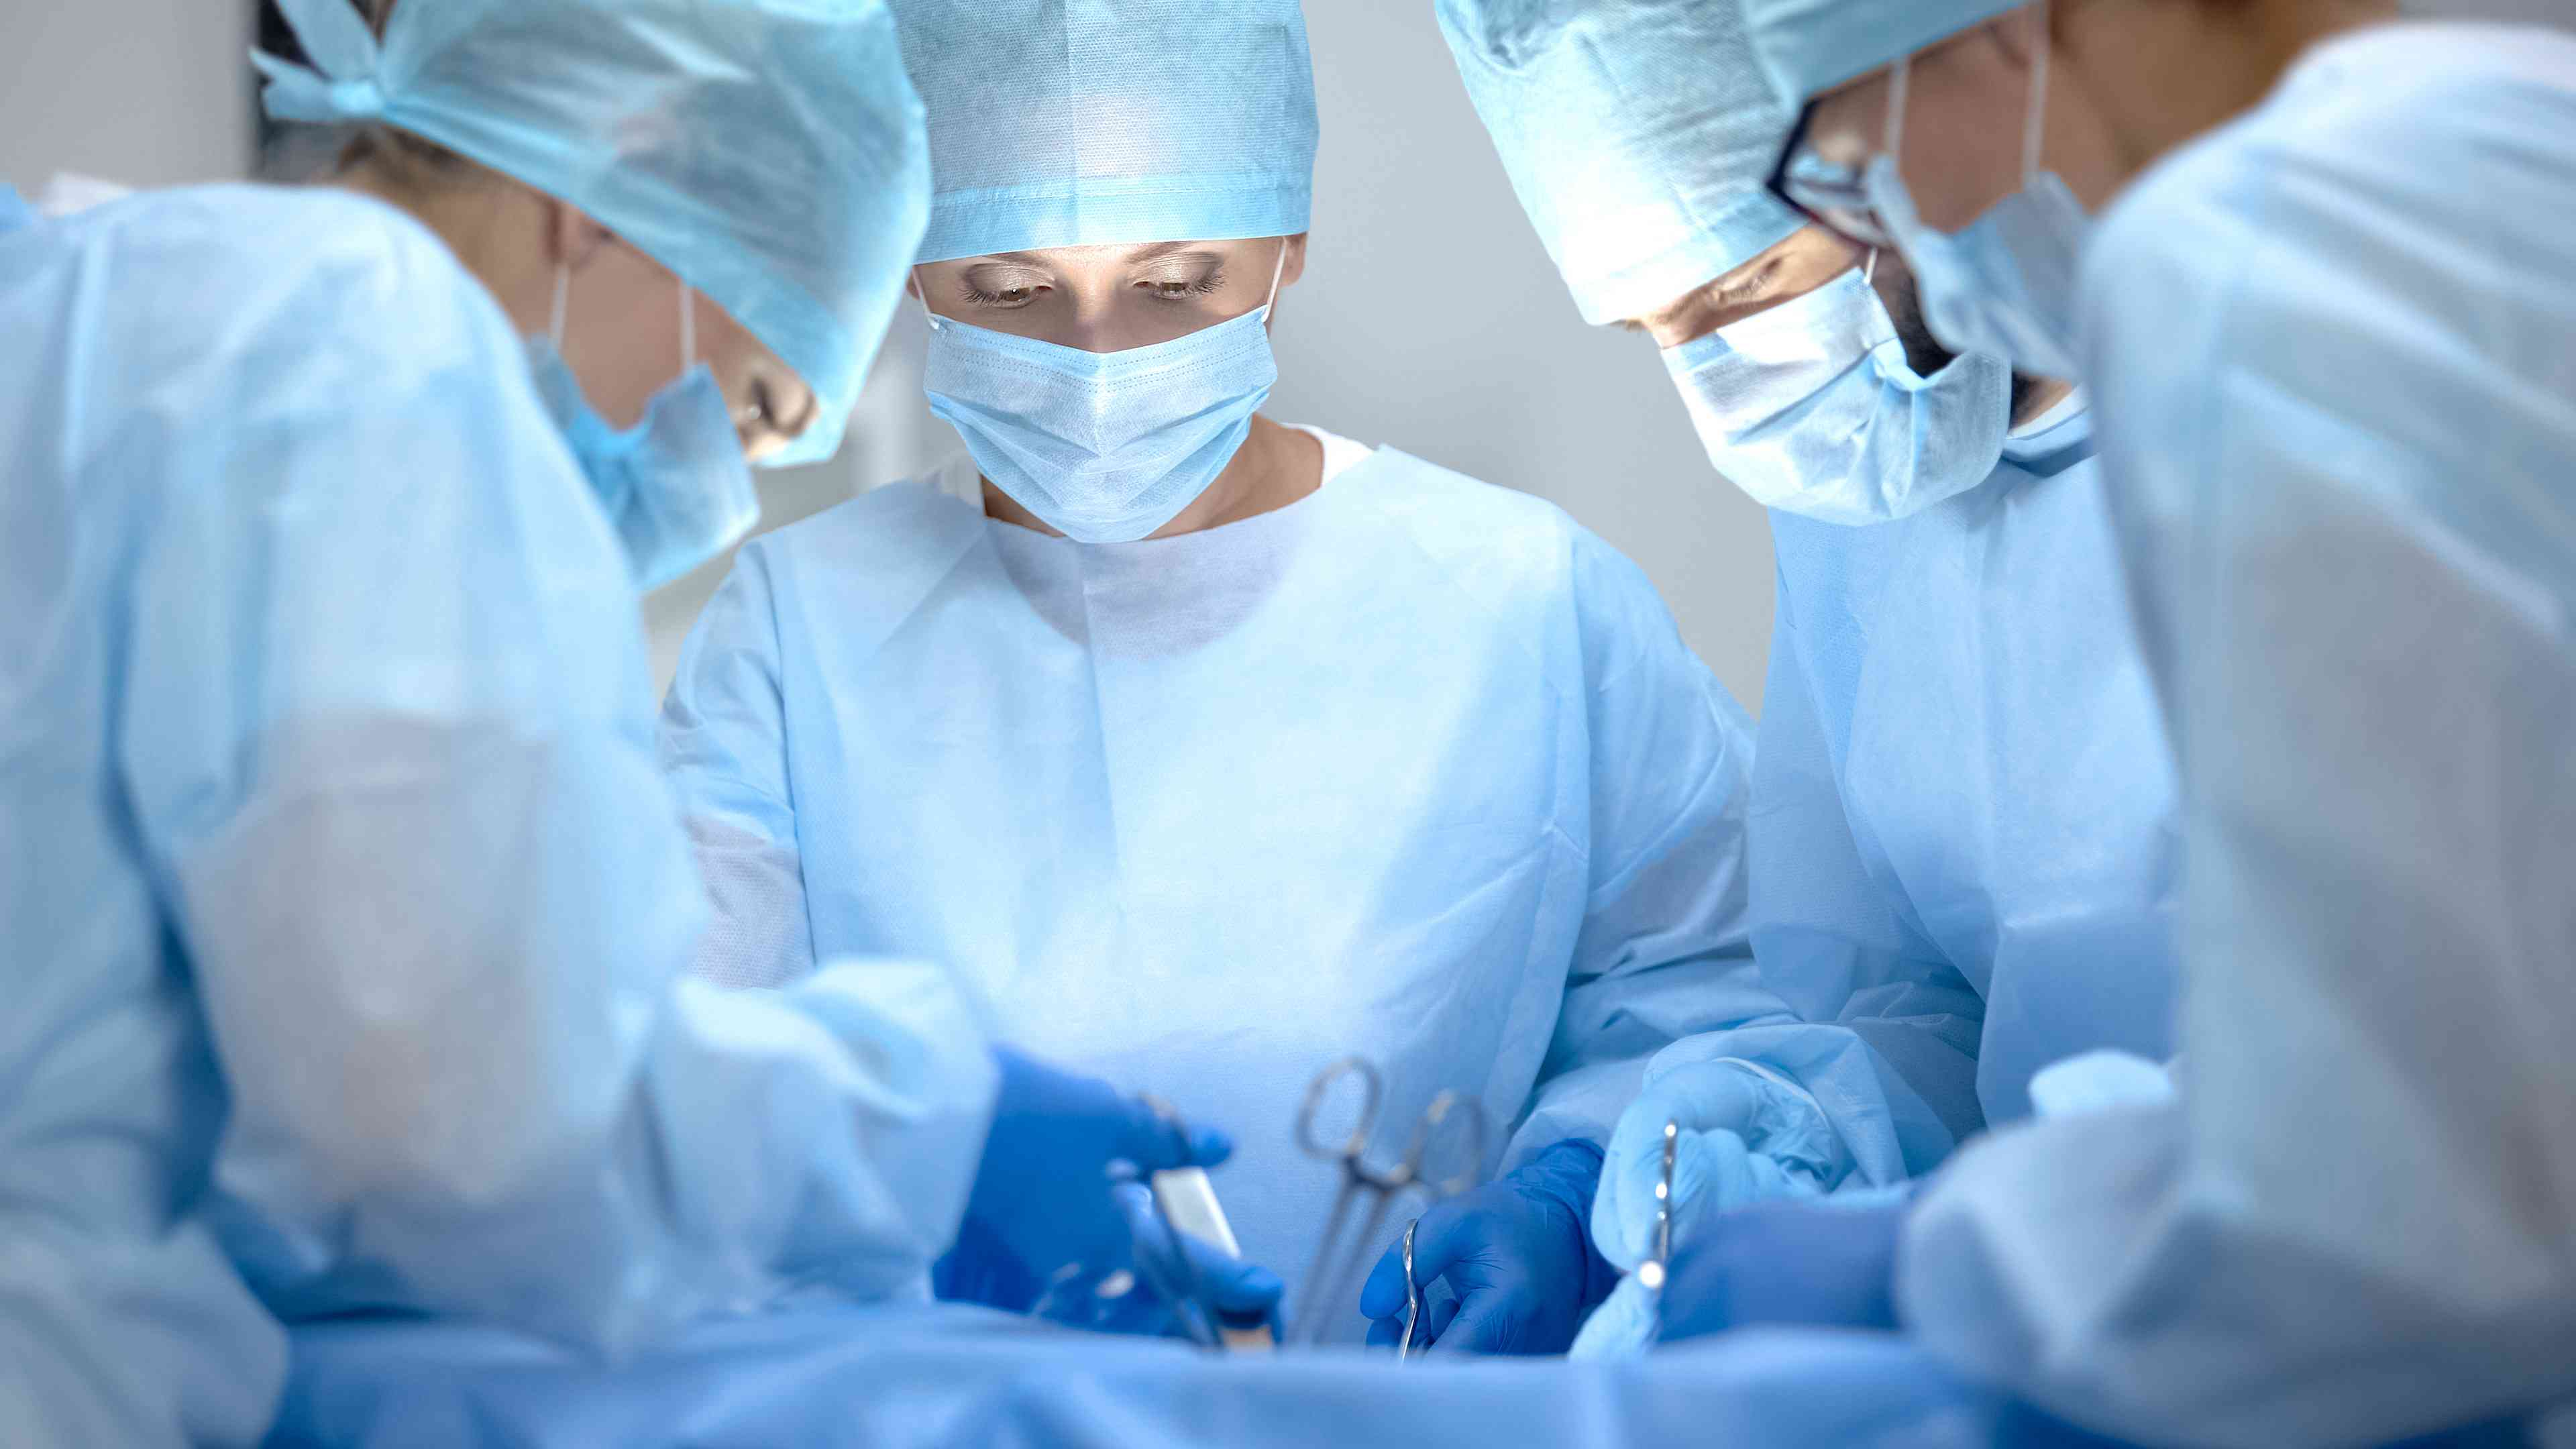 Surgical operating team performing surgery in modern hospital